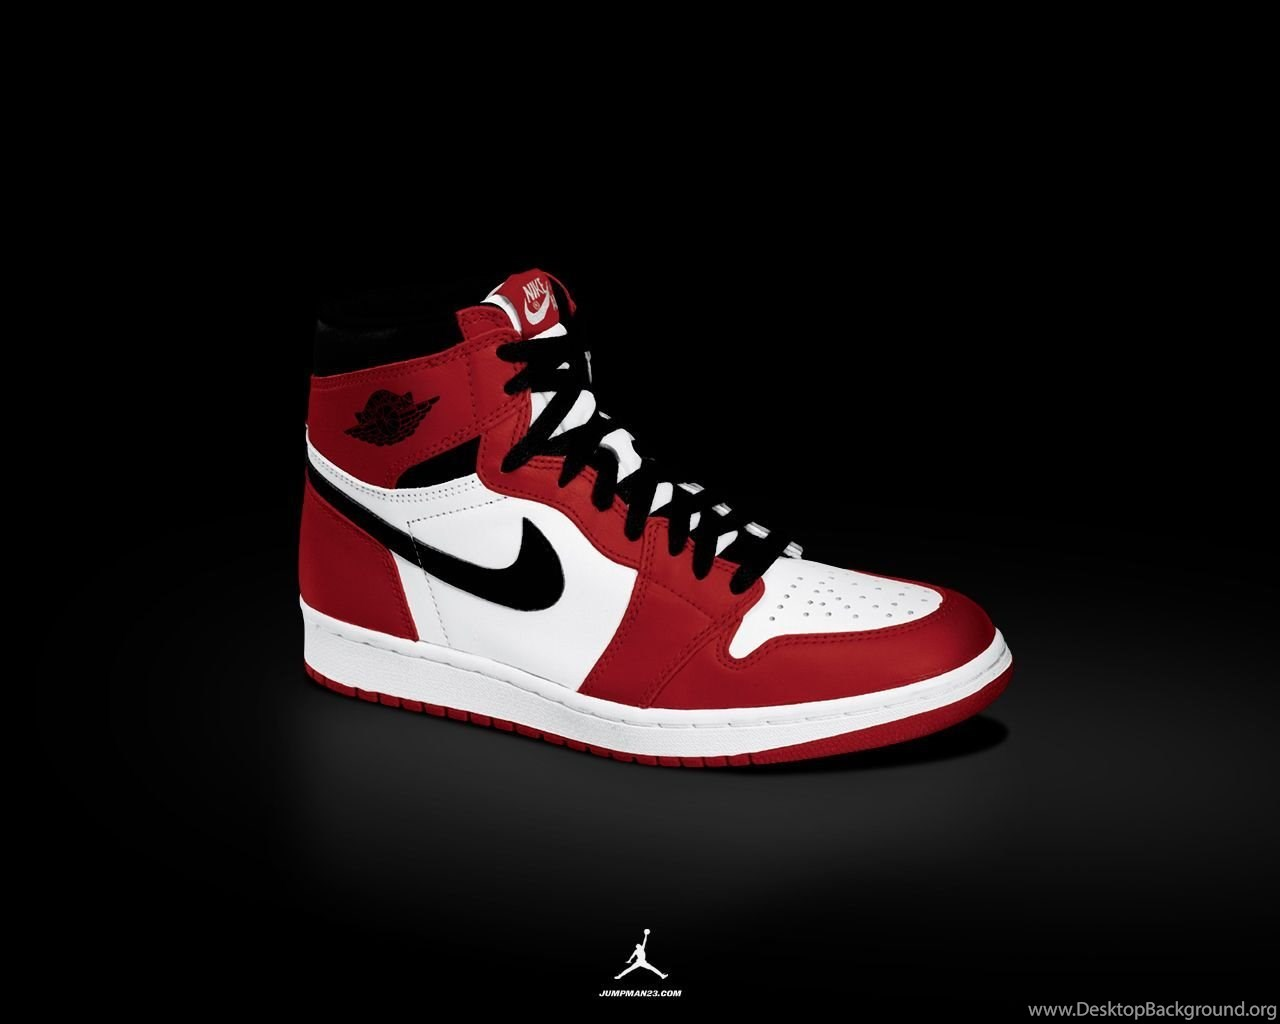 Air Jordan Shoes Wallpapers Desktop Background